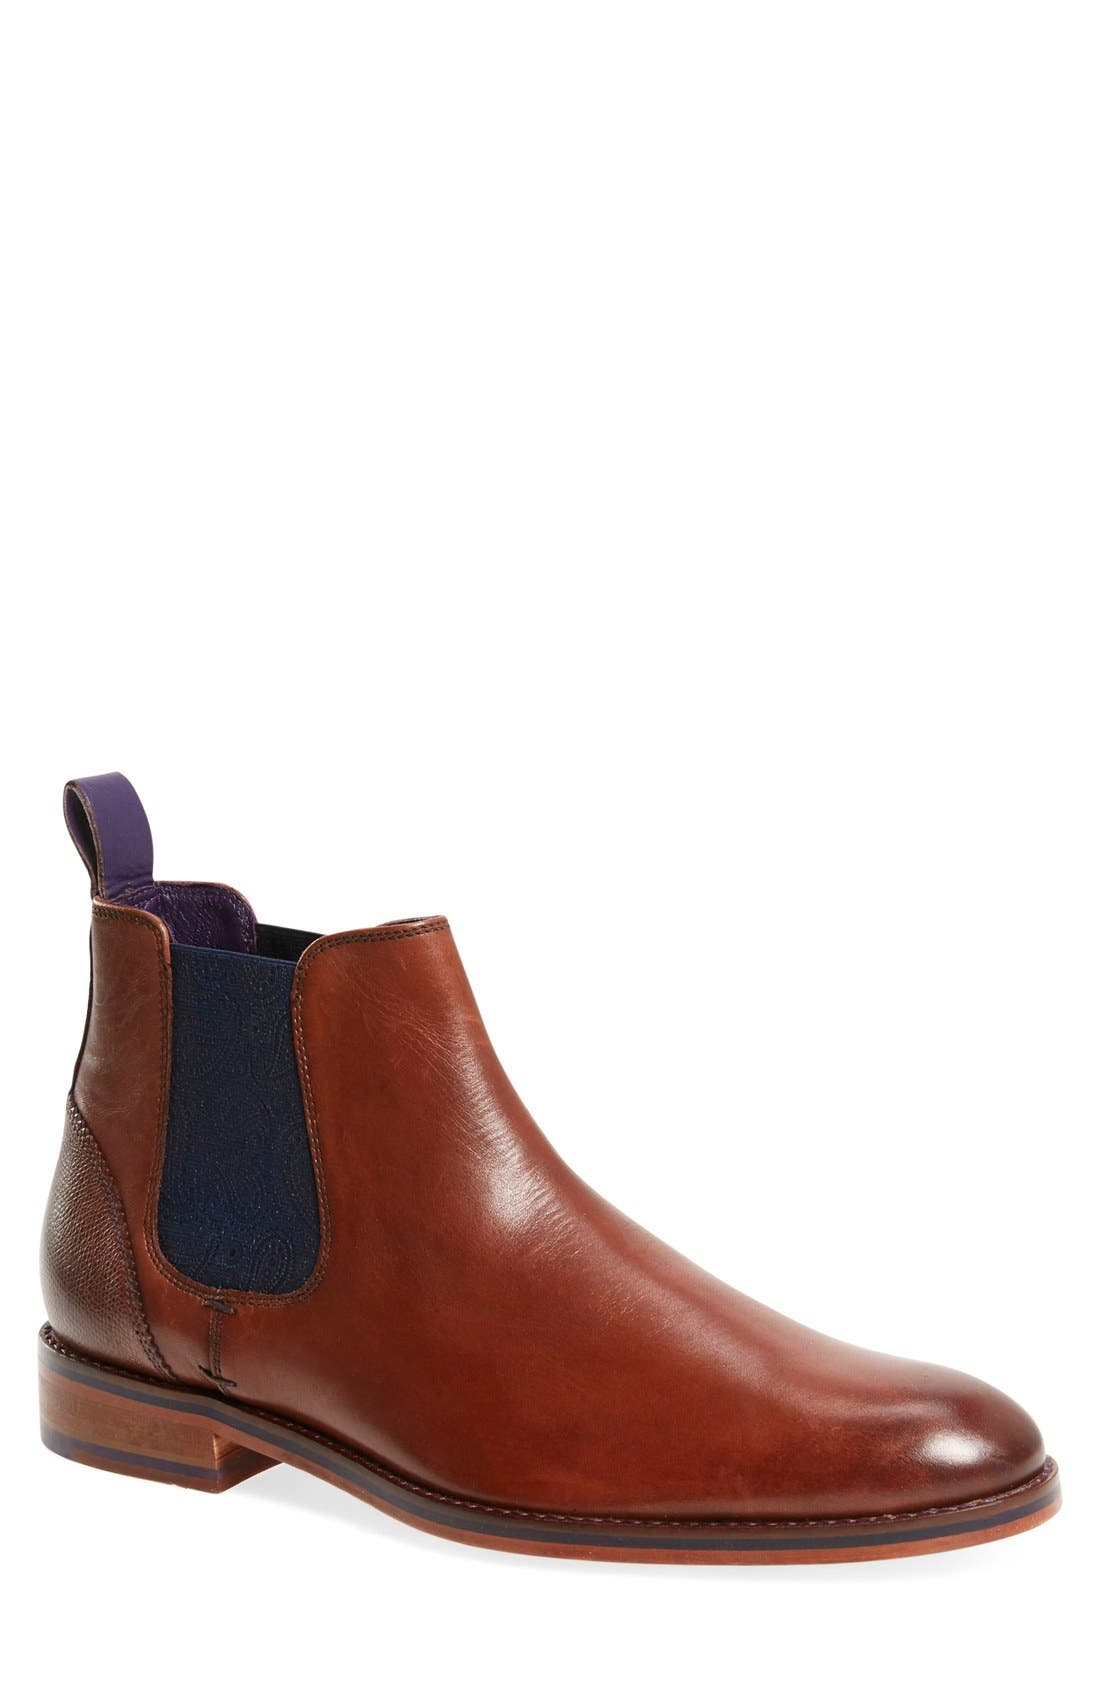 Main Image - Ted Baker London 'Camroon 4' Chelsea Boot (Men)